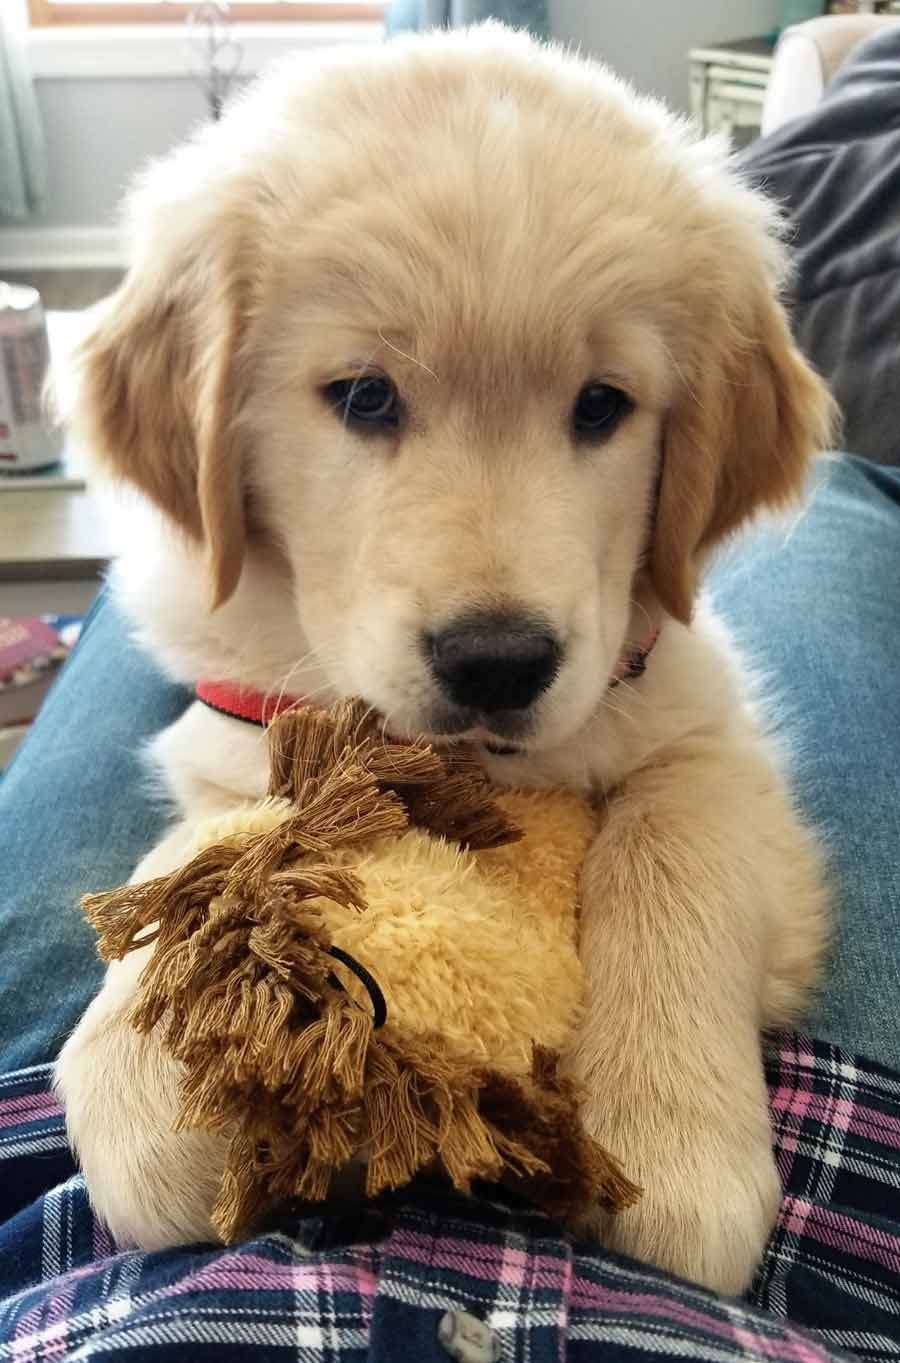 Tucker the Golden Retriever